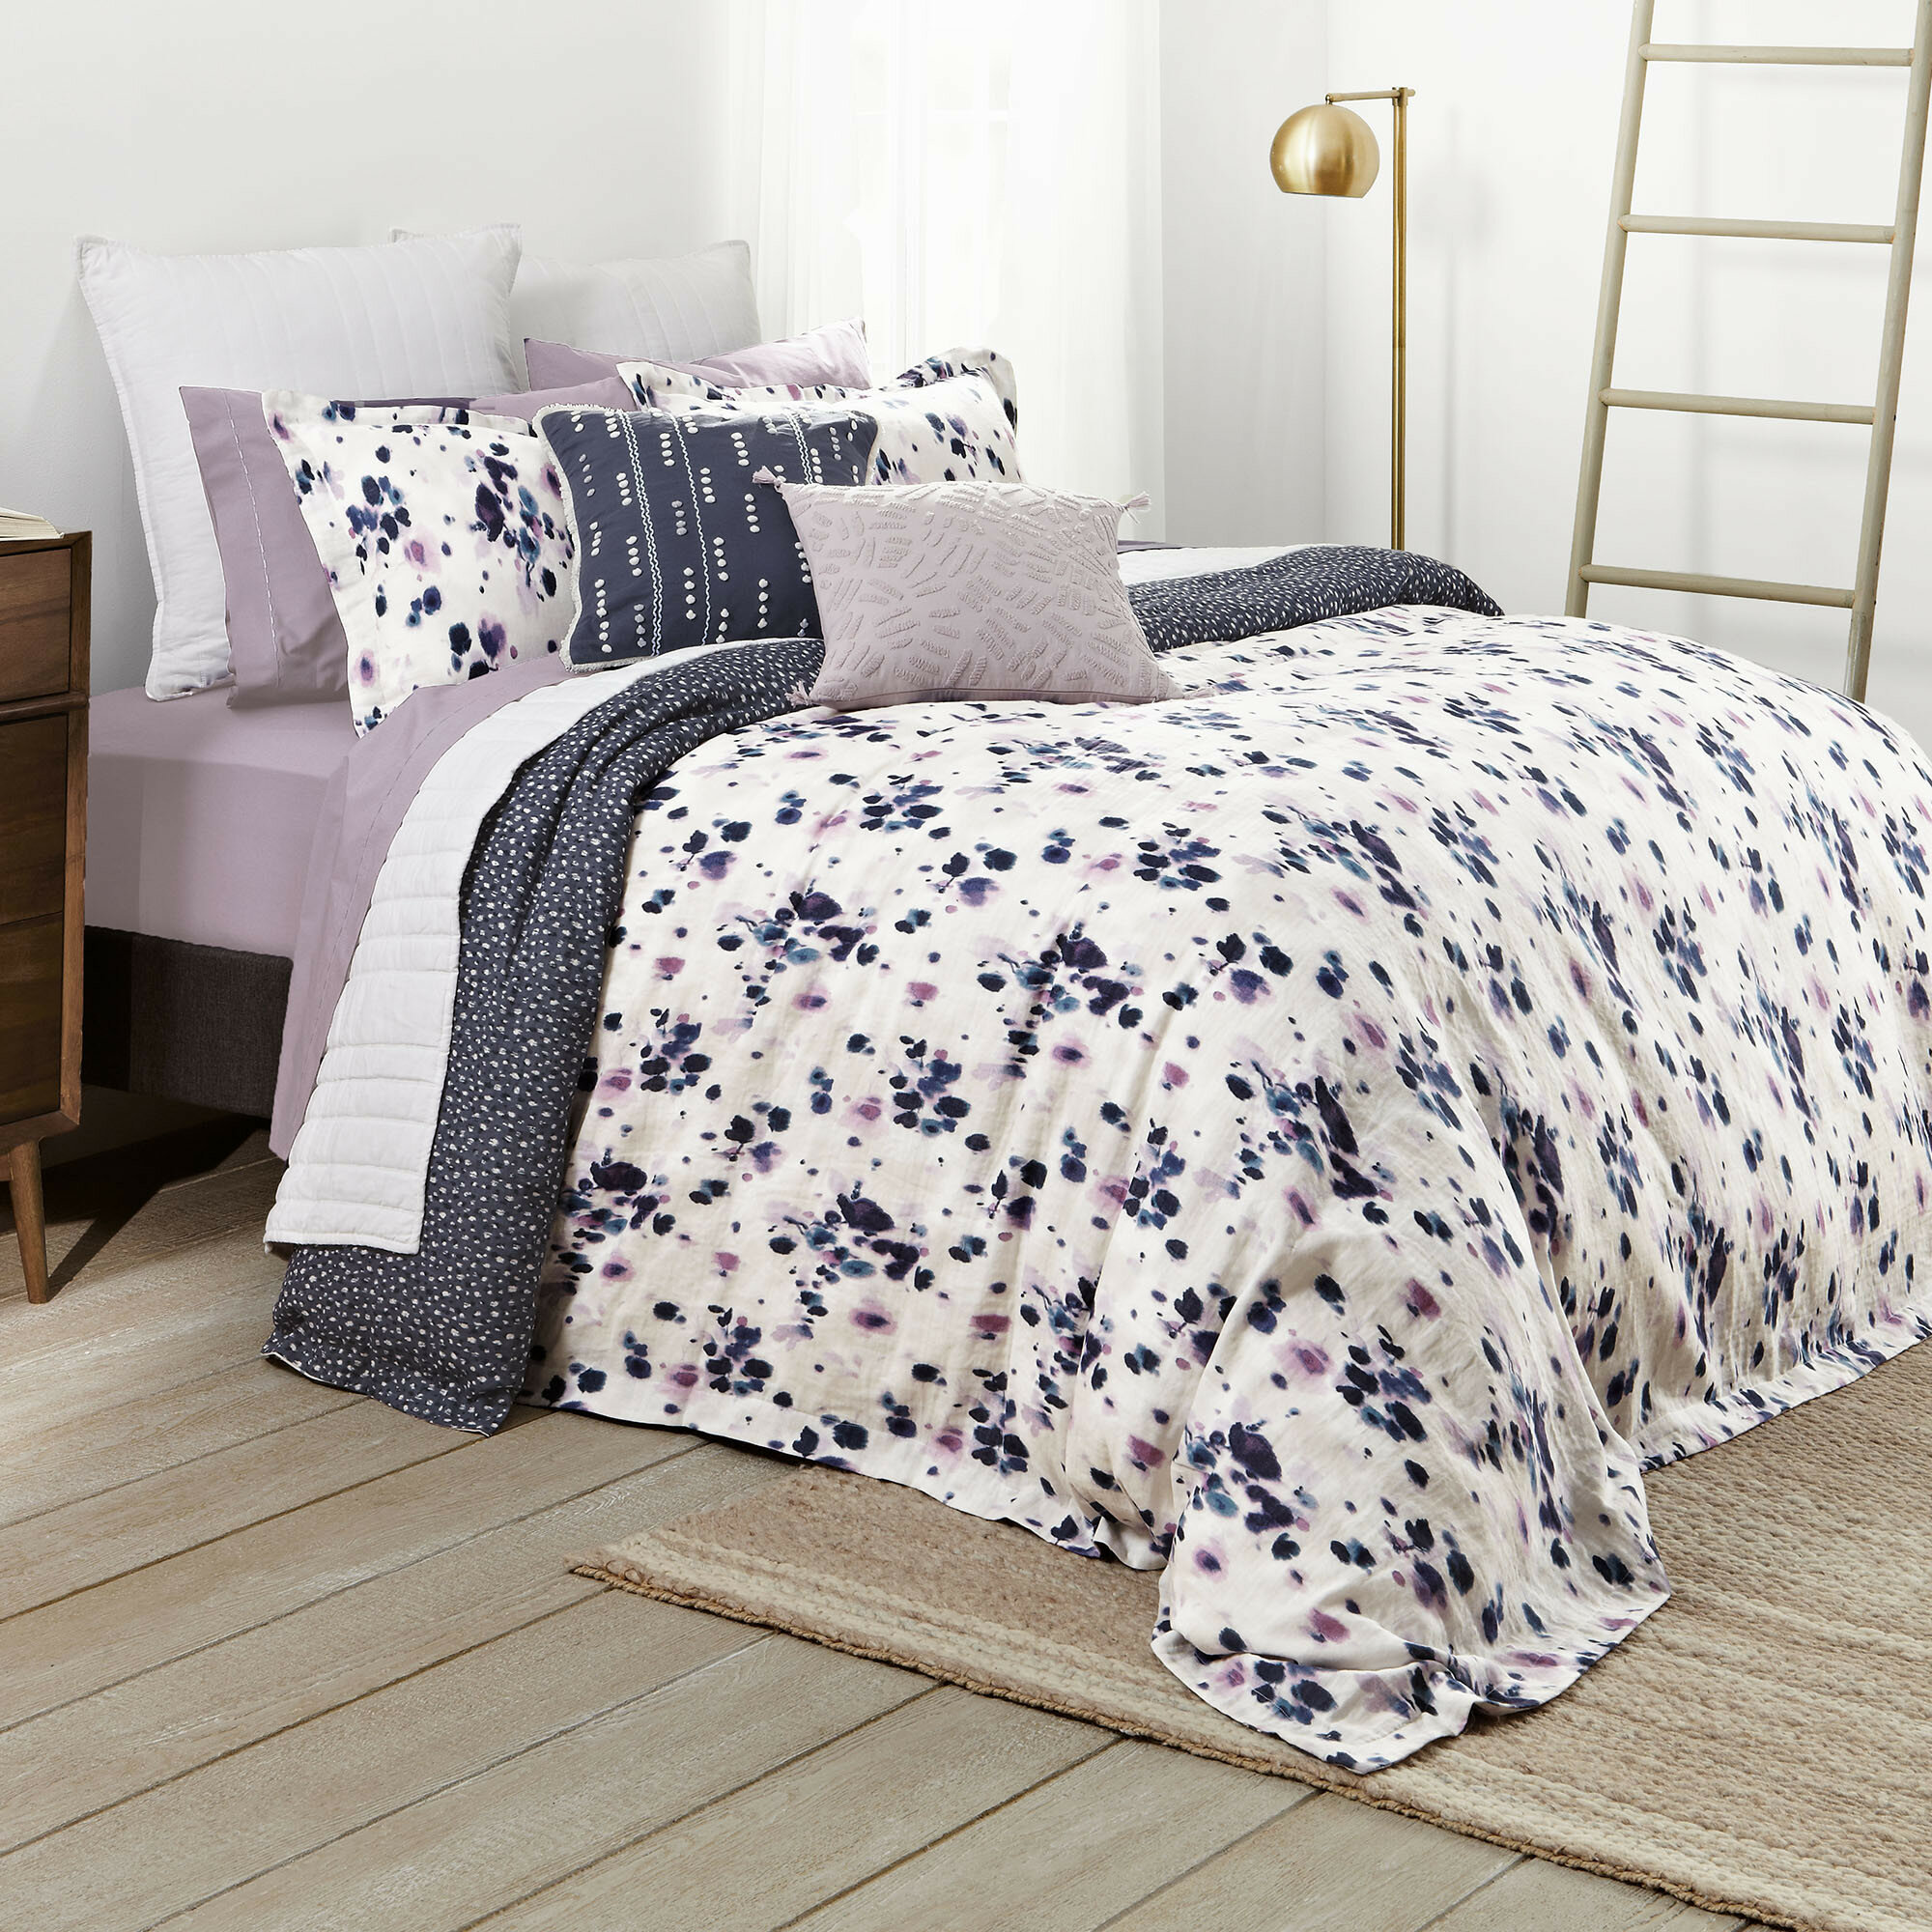 Splendid Home Alpine Comforter Set King White